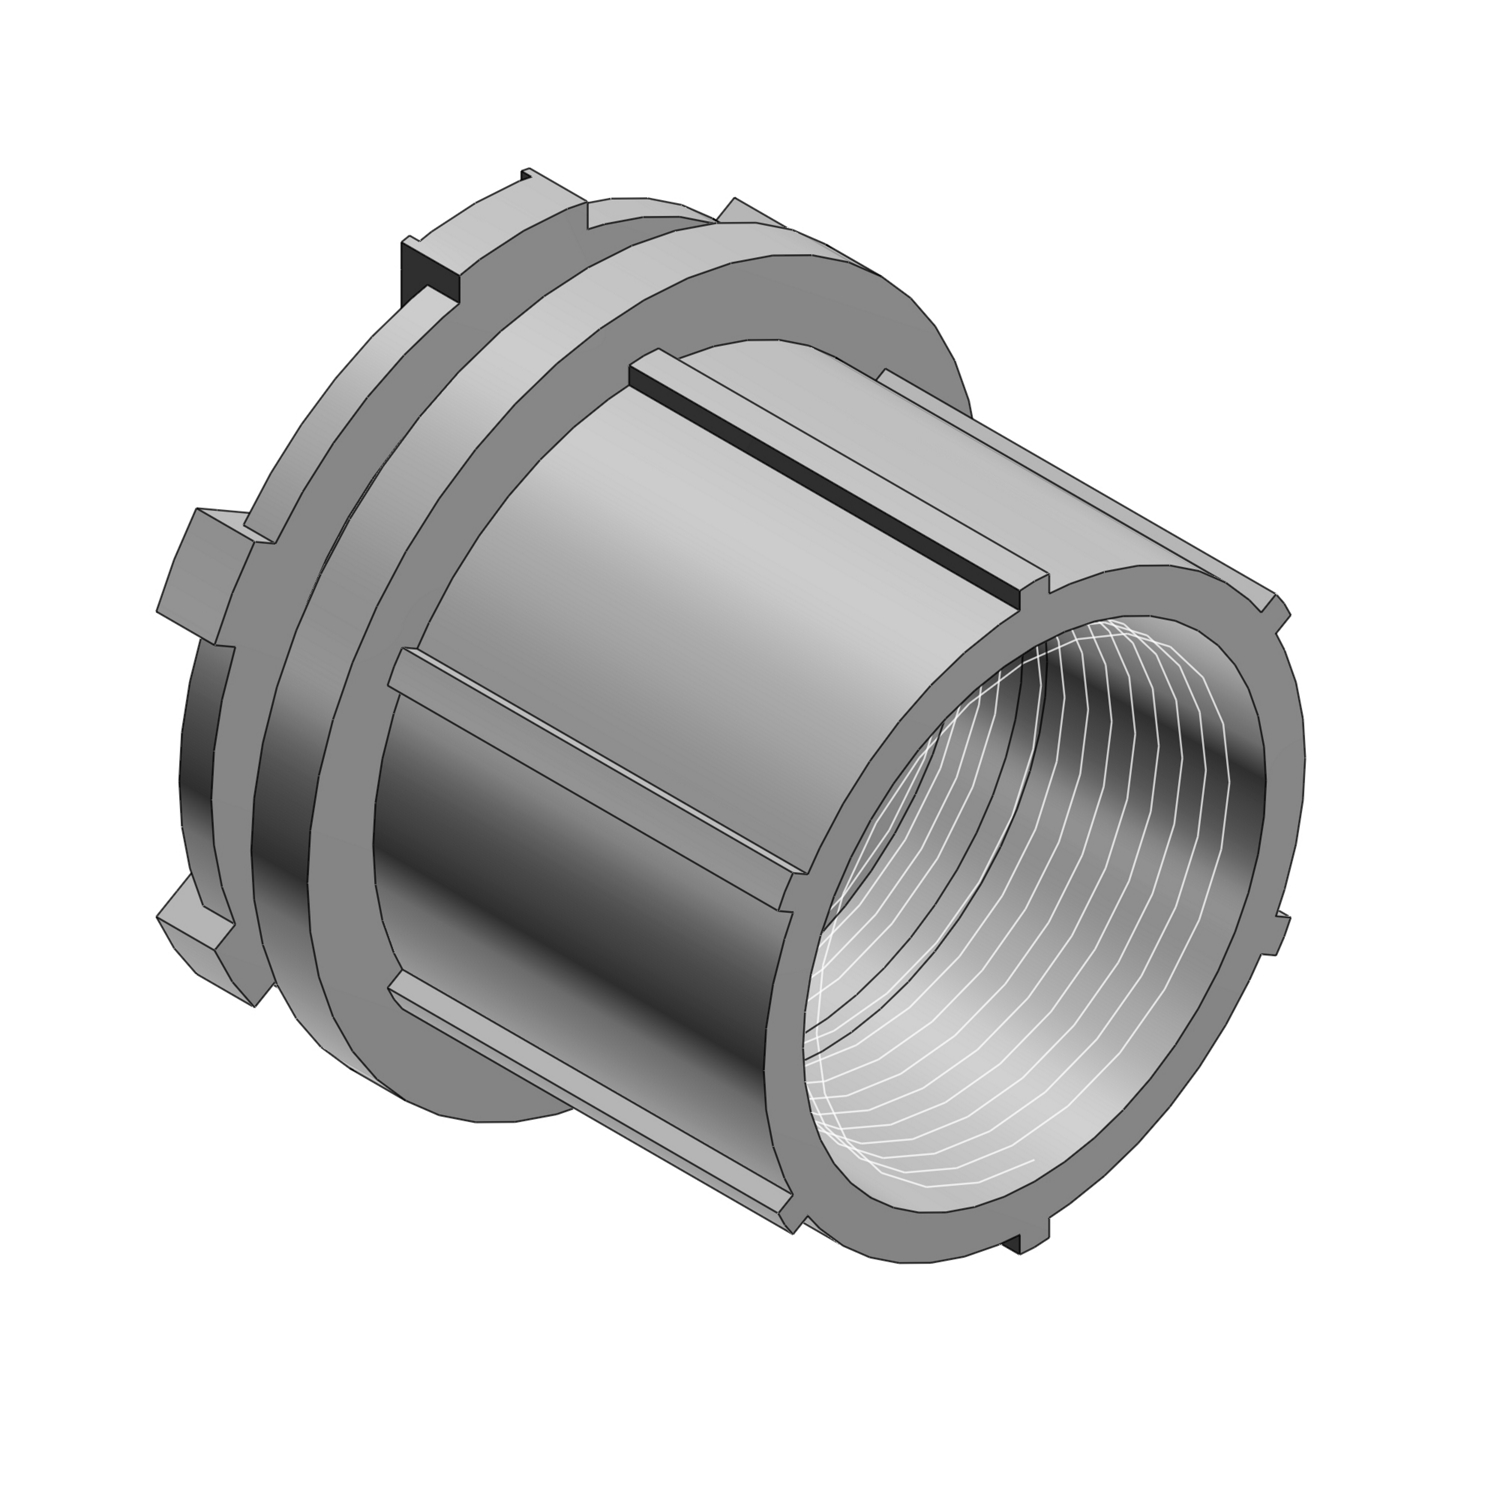 T&B® CHASE® HTZ3 Conduit Hub With Insulated Throat, 1 in, For Use With Threaded IMC/Rigid Conduits, Die Cast Zinc, Aluminum Lacquered